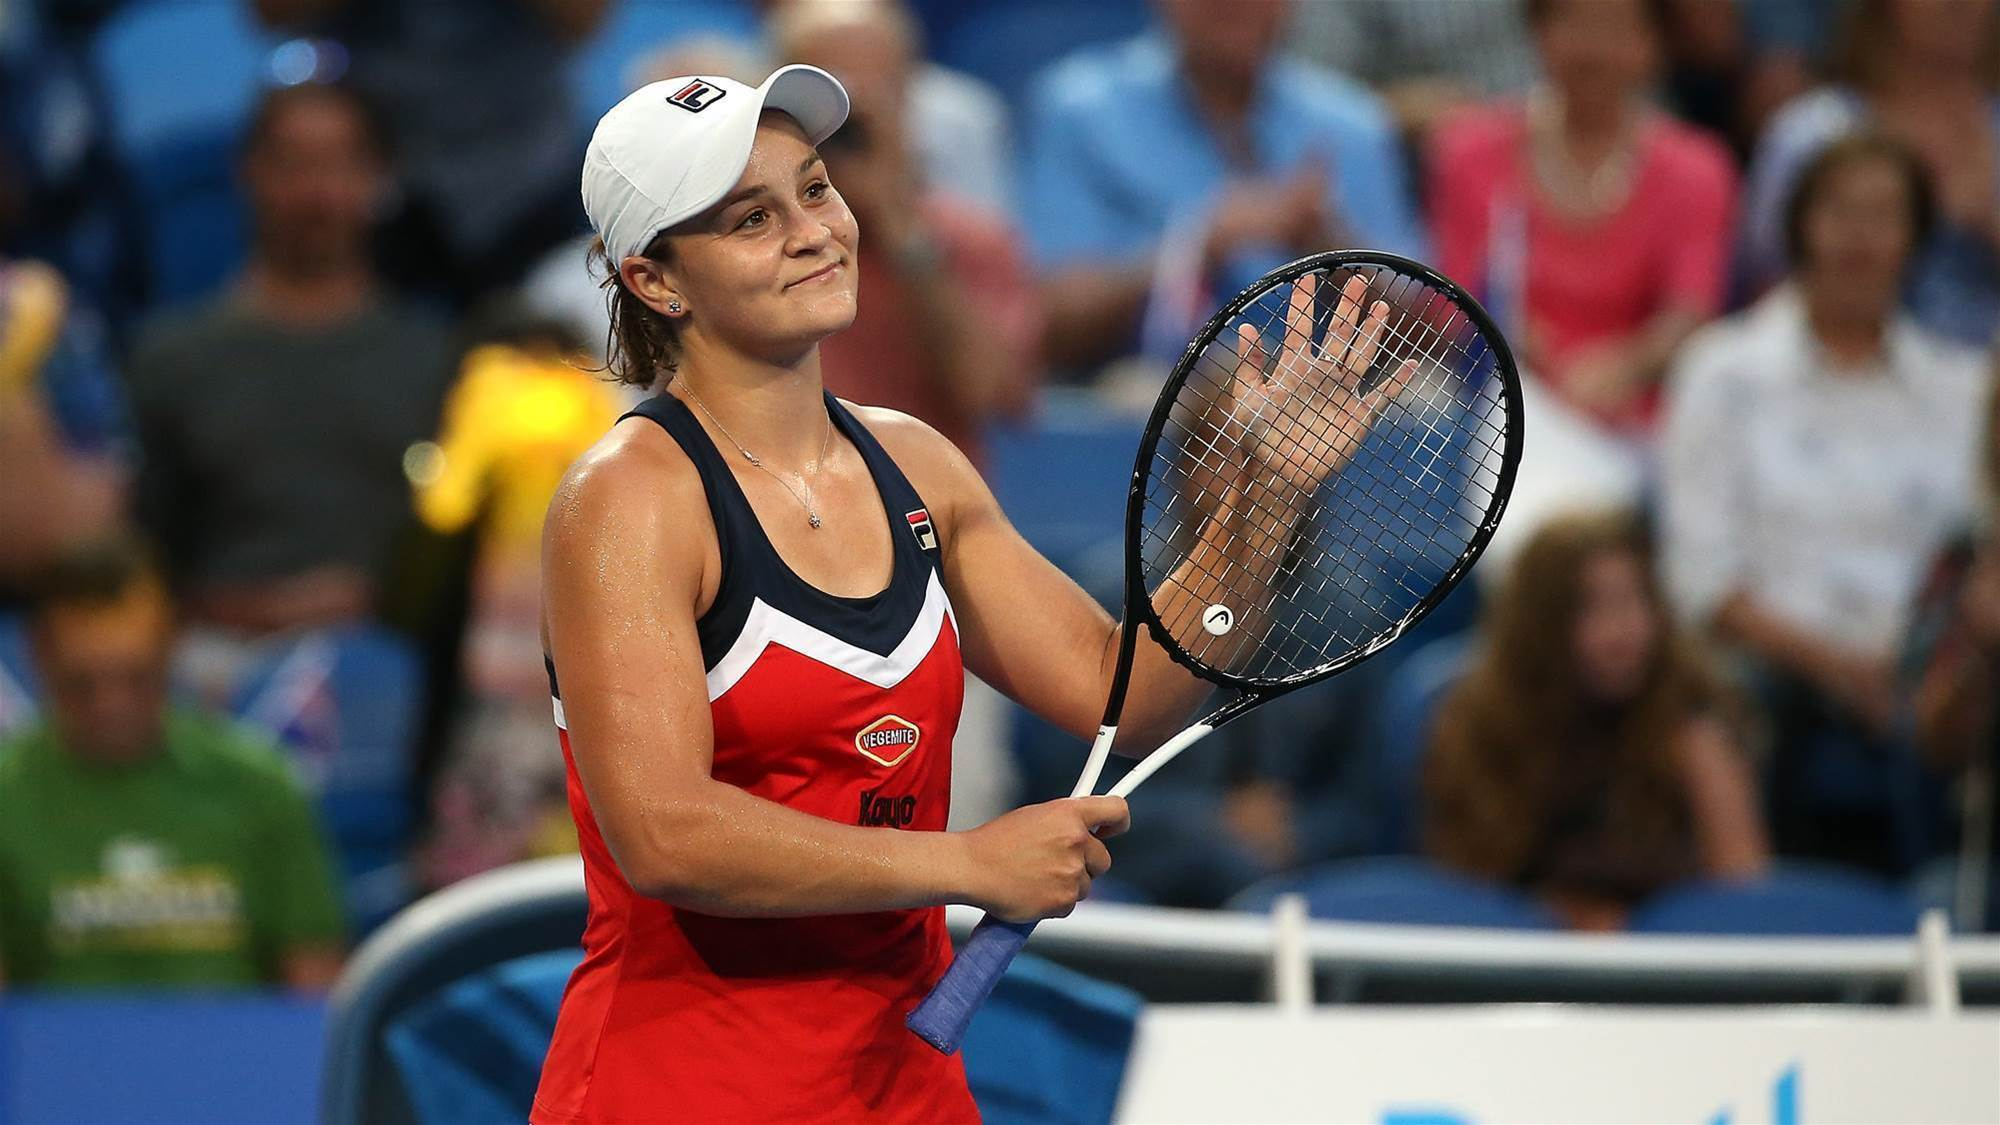 Barty wants to crack the top 10